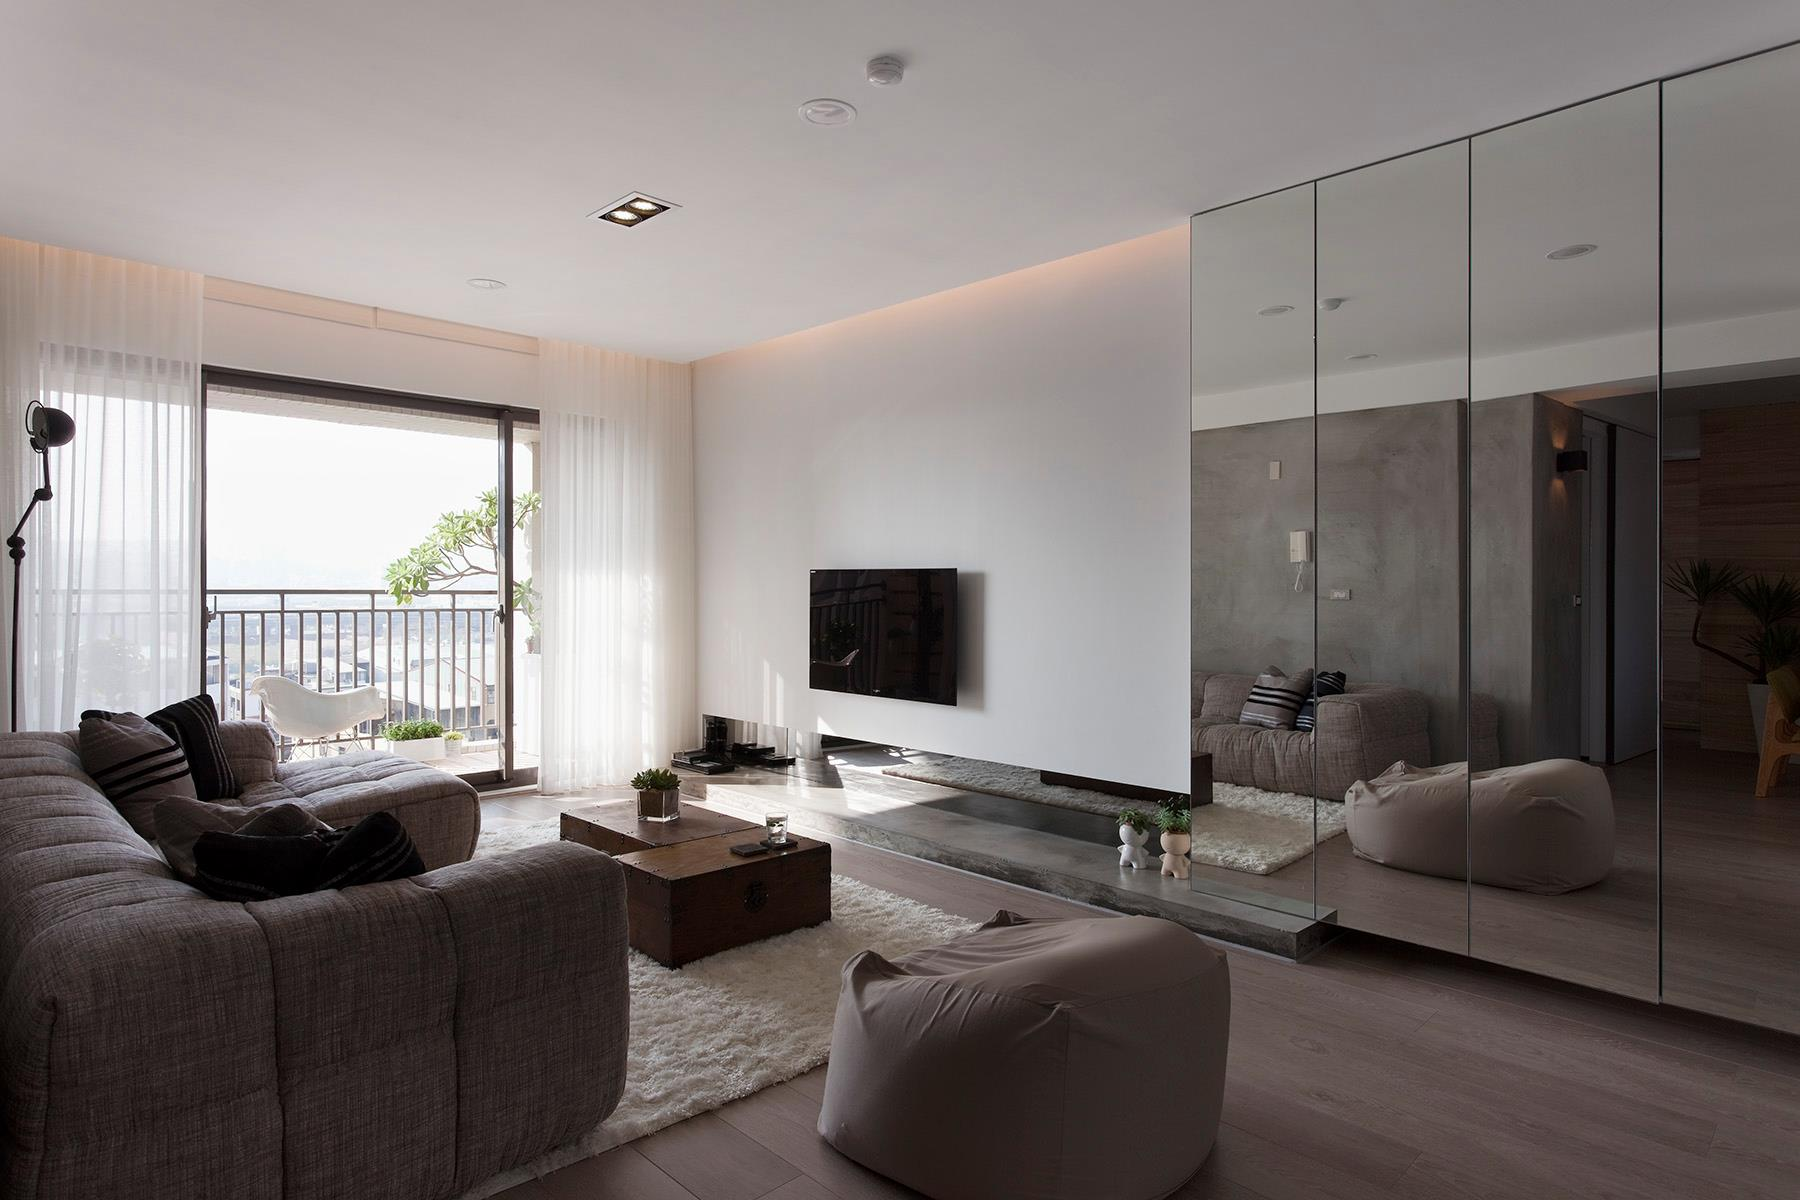 Minimalist apartment in taiwan by fertility design for Minimalist apartment design